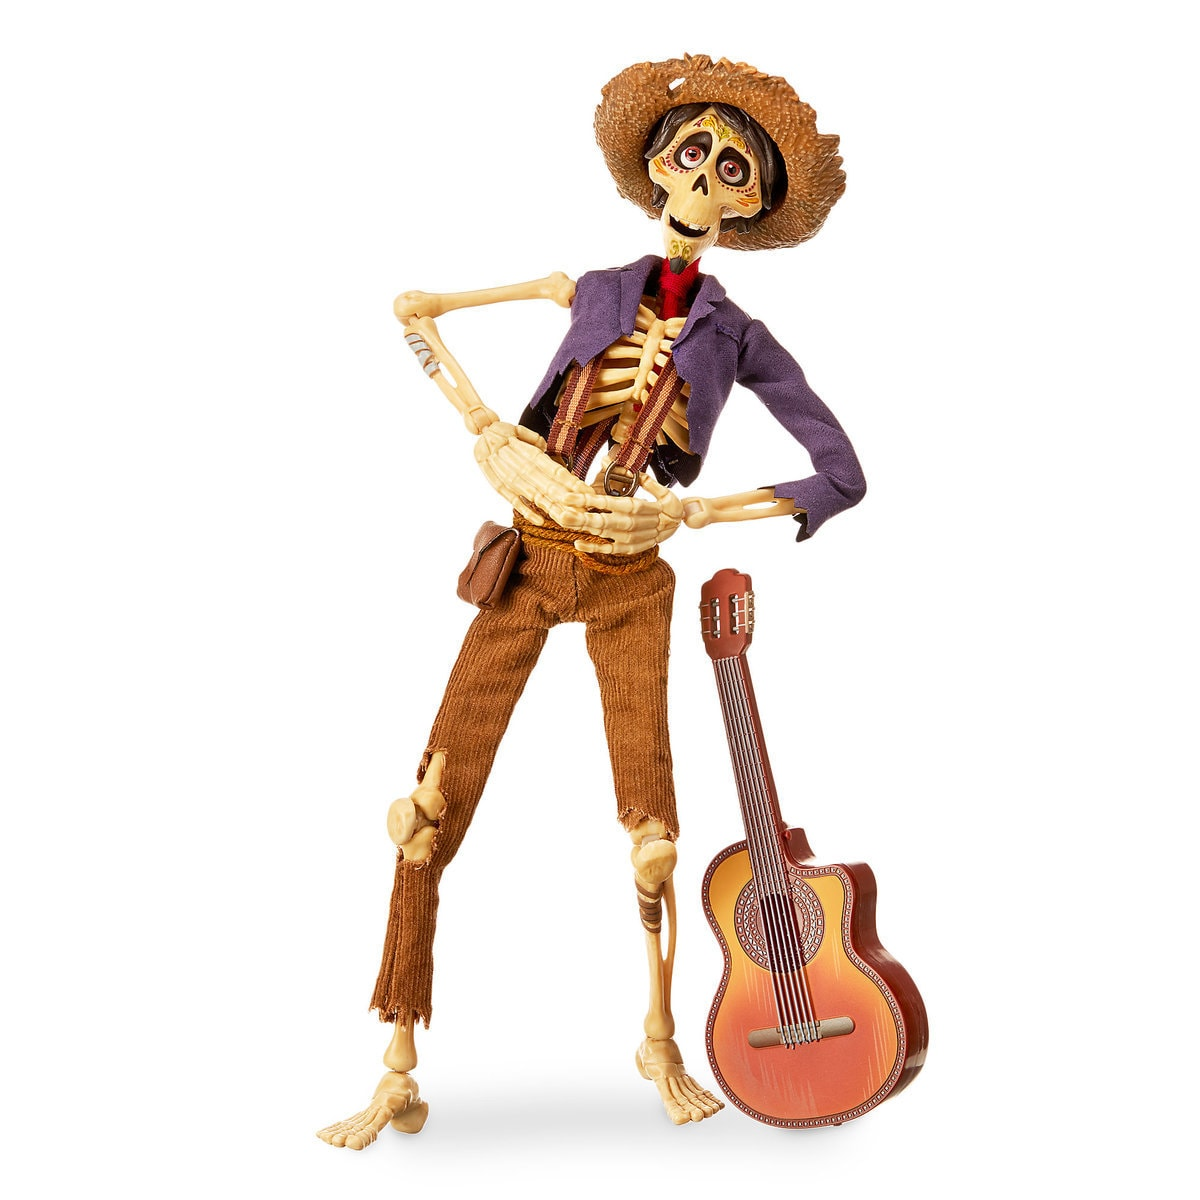 Hctor singing figure coco shopdisney hctor singing figure coco stopboris Image collections